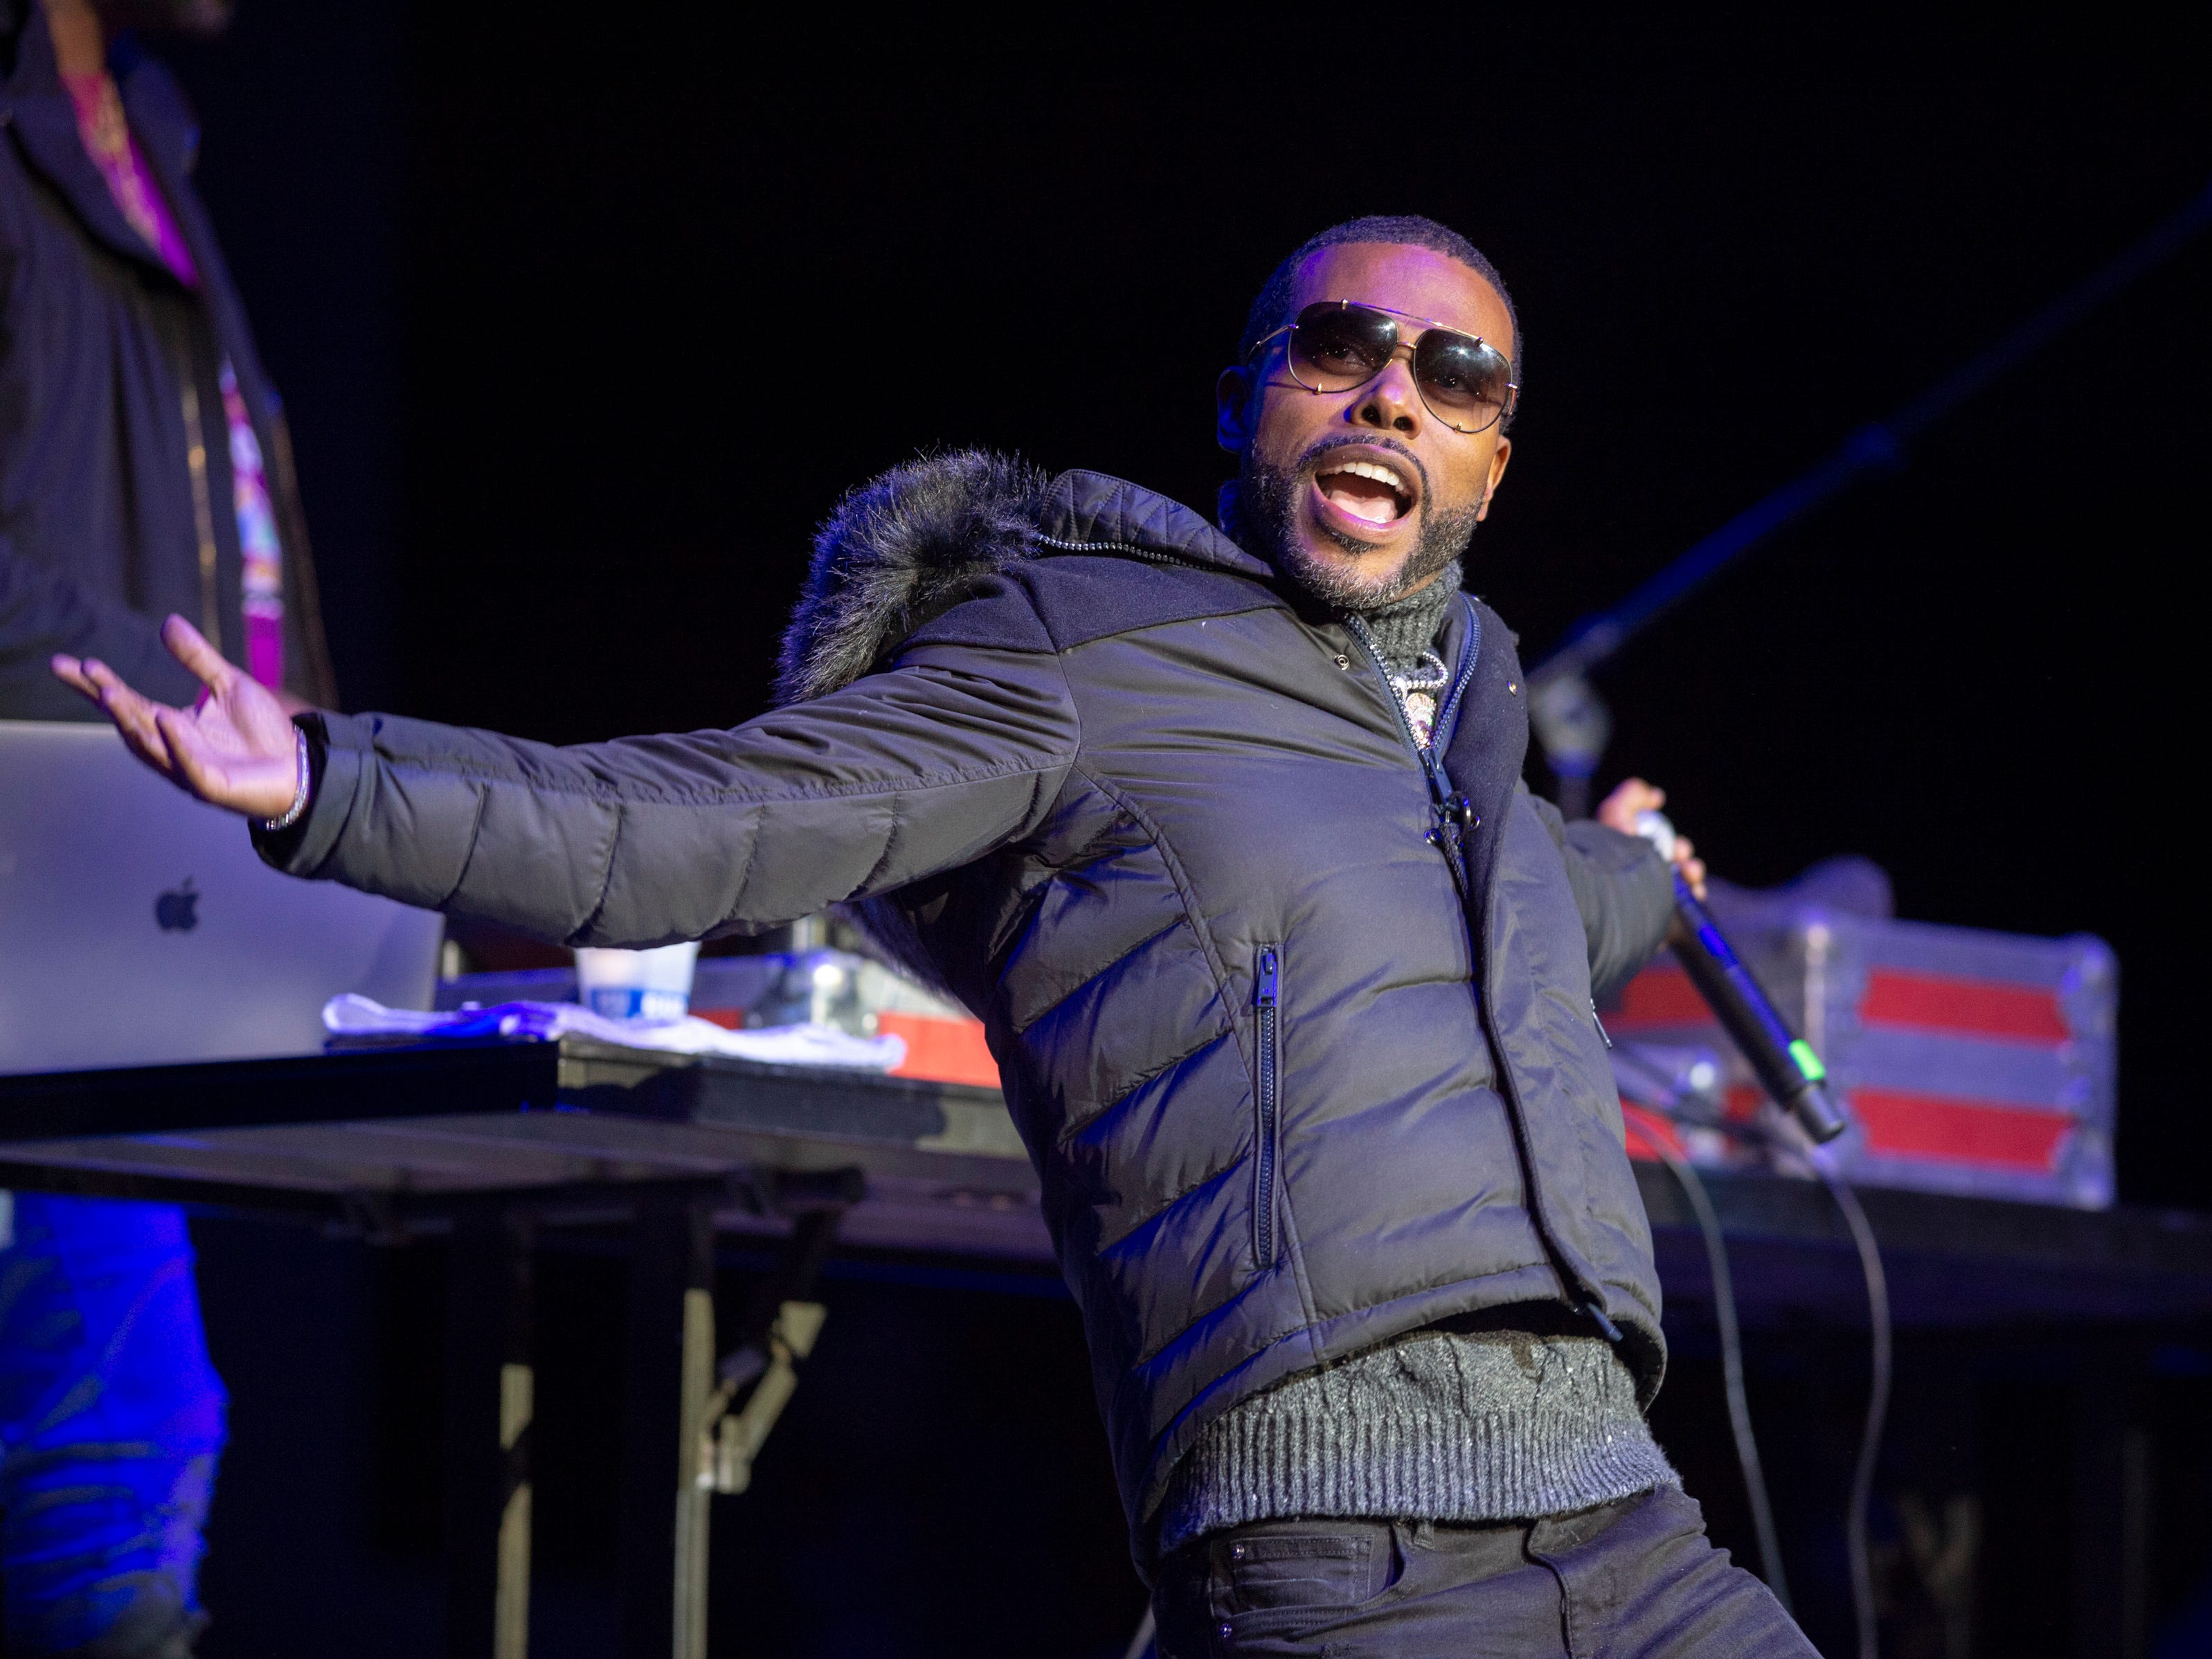 """Lil Duval performs on stage. Radio stations Hot 96.3 and Radio Now 100.9 hosted the annual """"Santa Slam"""" concert, featuring American hip hop trio Migos, in the Indiana Farmers Coliseum at the Indiana State Fairgrounds in Indianapolis, Sunday, Dec. 9, 2018."""